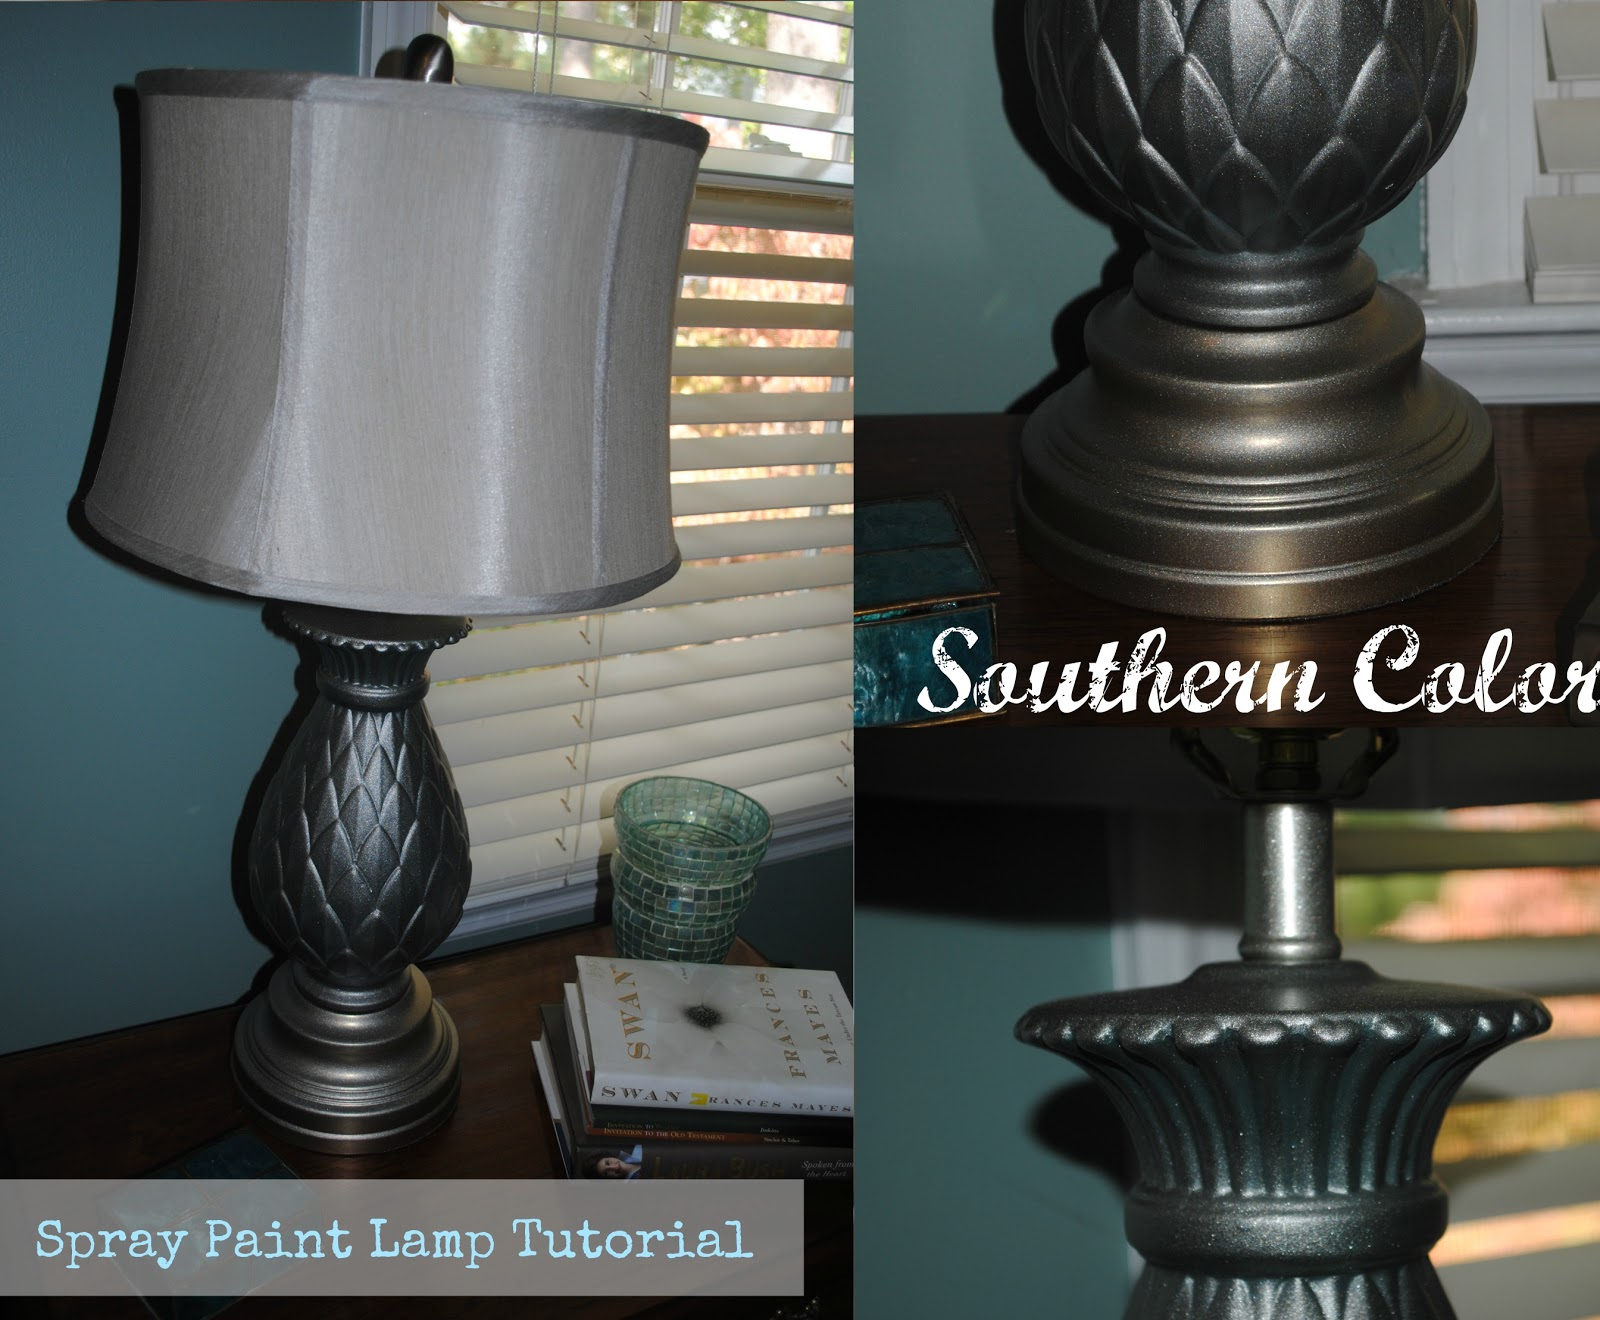 Southern Color: Spray Paint Lamp Tutorial